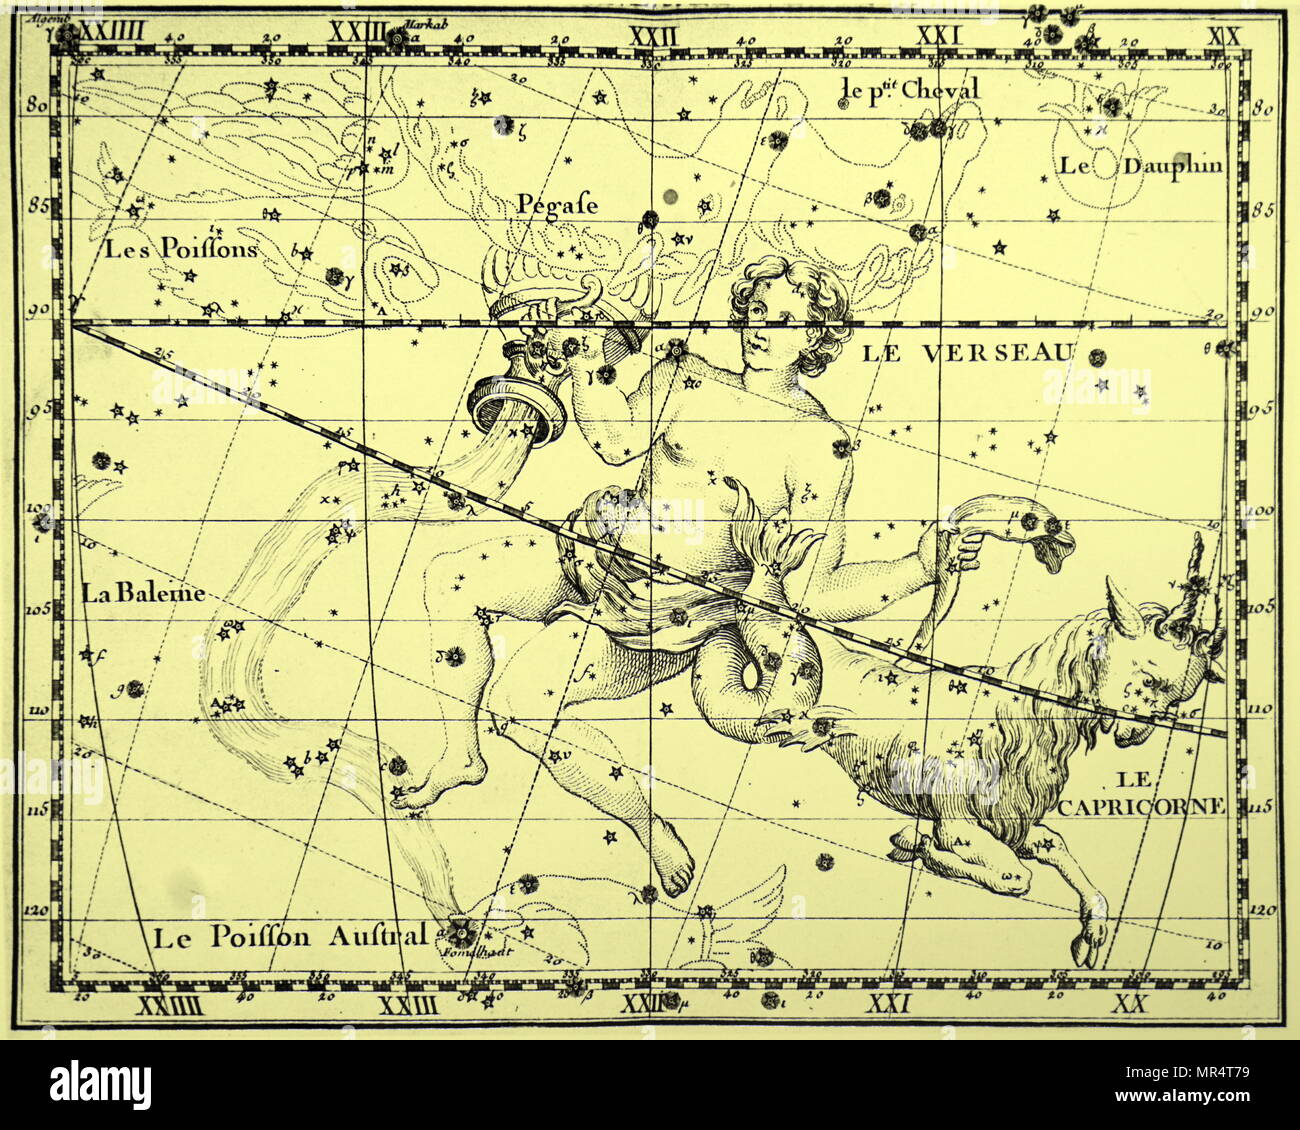 Engraving depicting the constellations of Aquarius and Capricorn both constellations of the Zodiac. Dated 18th century - Stock Image